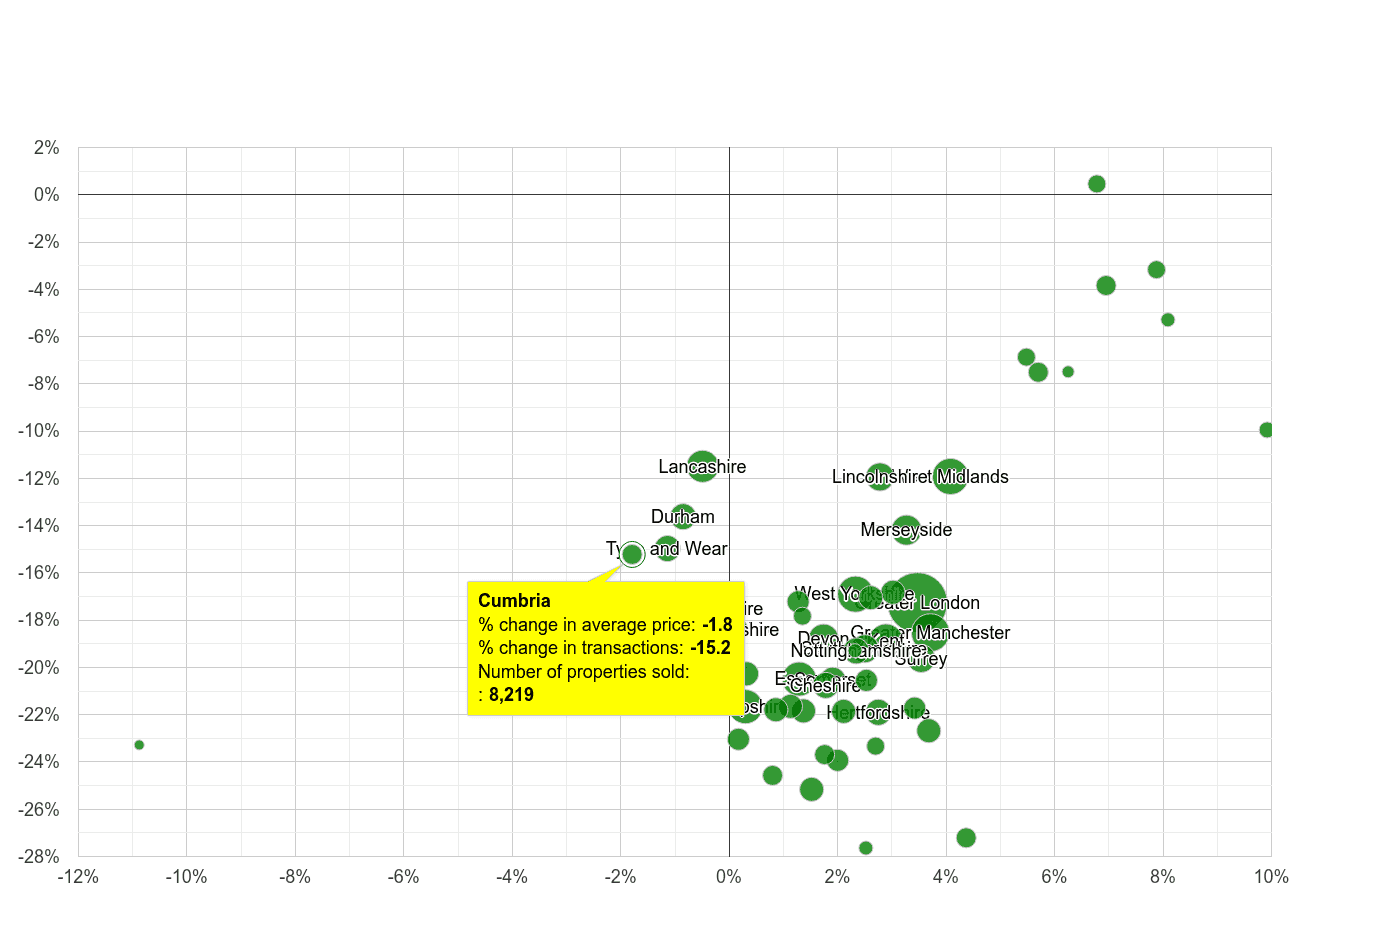 Cumbria property price and sales volume change relative to other counties